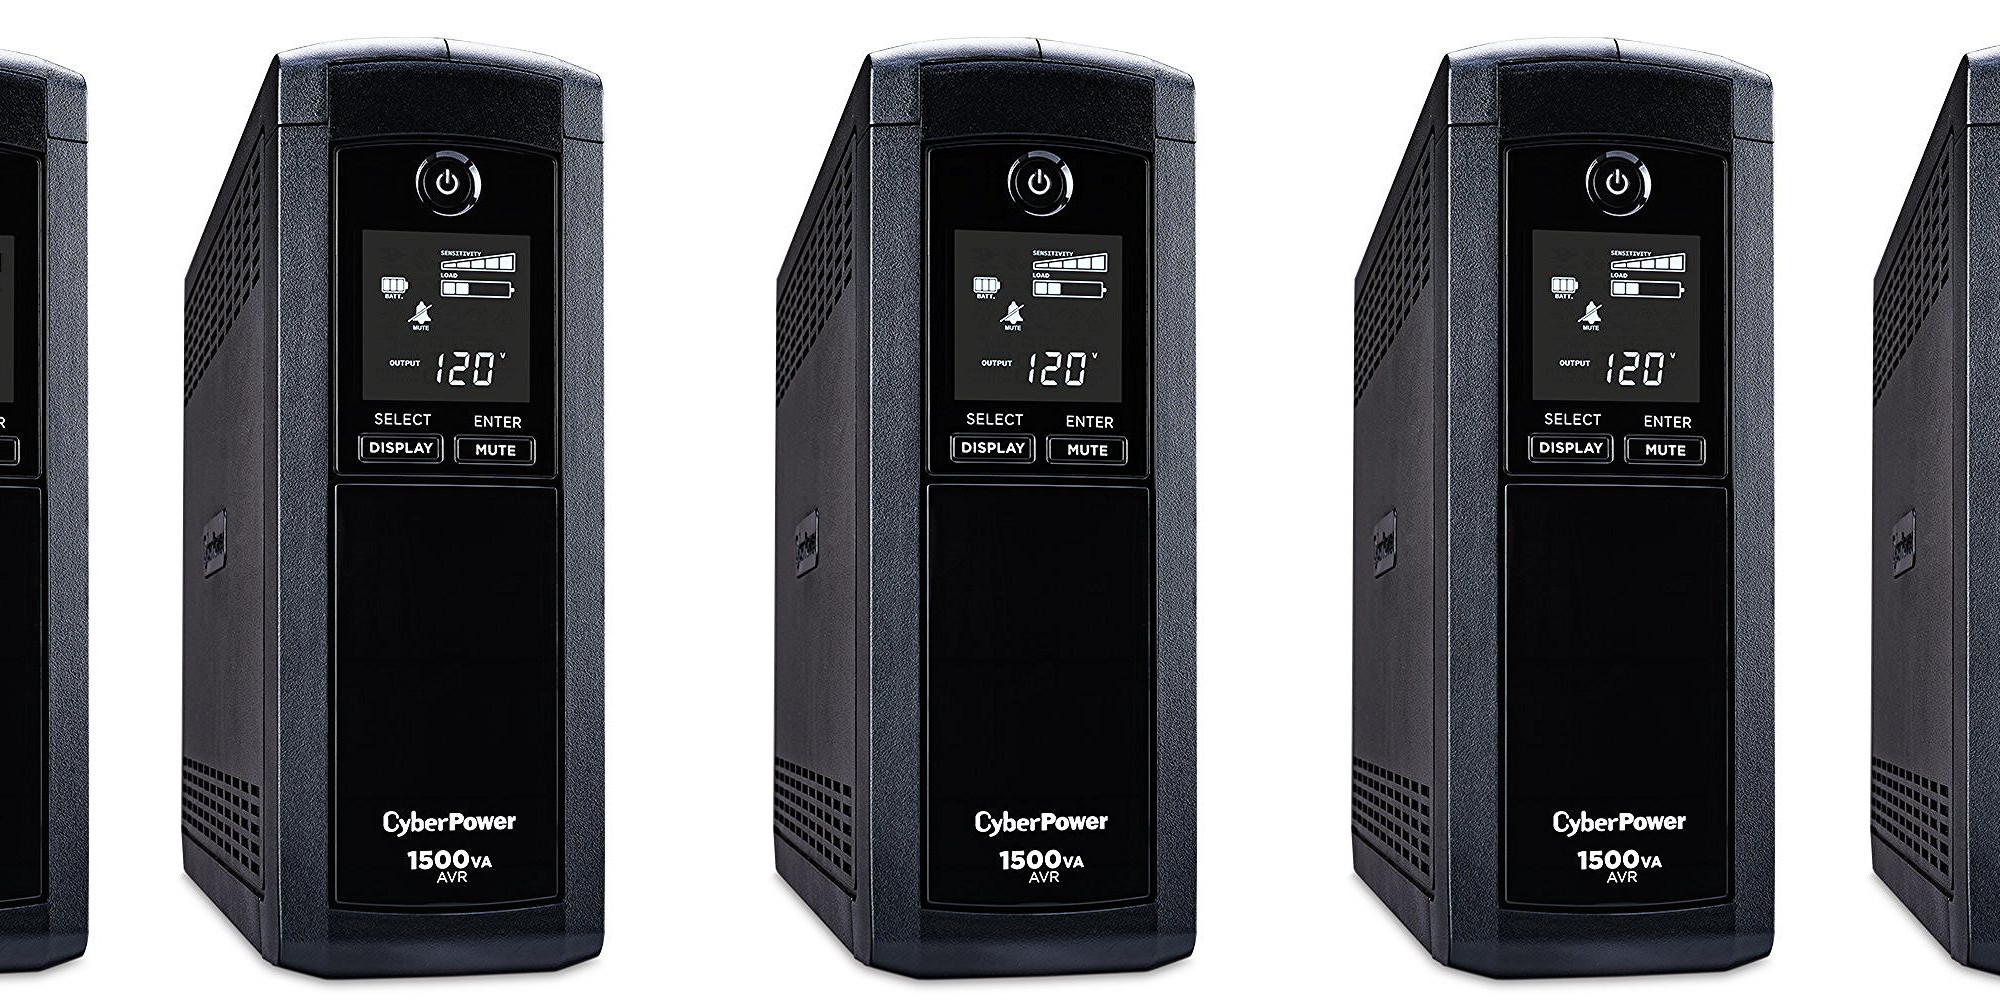 cyberpower-cp1500avr-900w-intelligent-battery-backup-ups-system